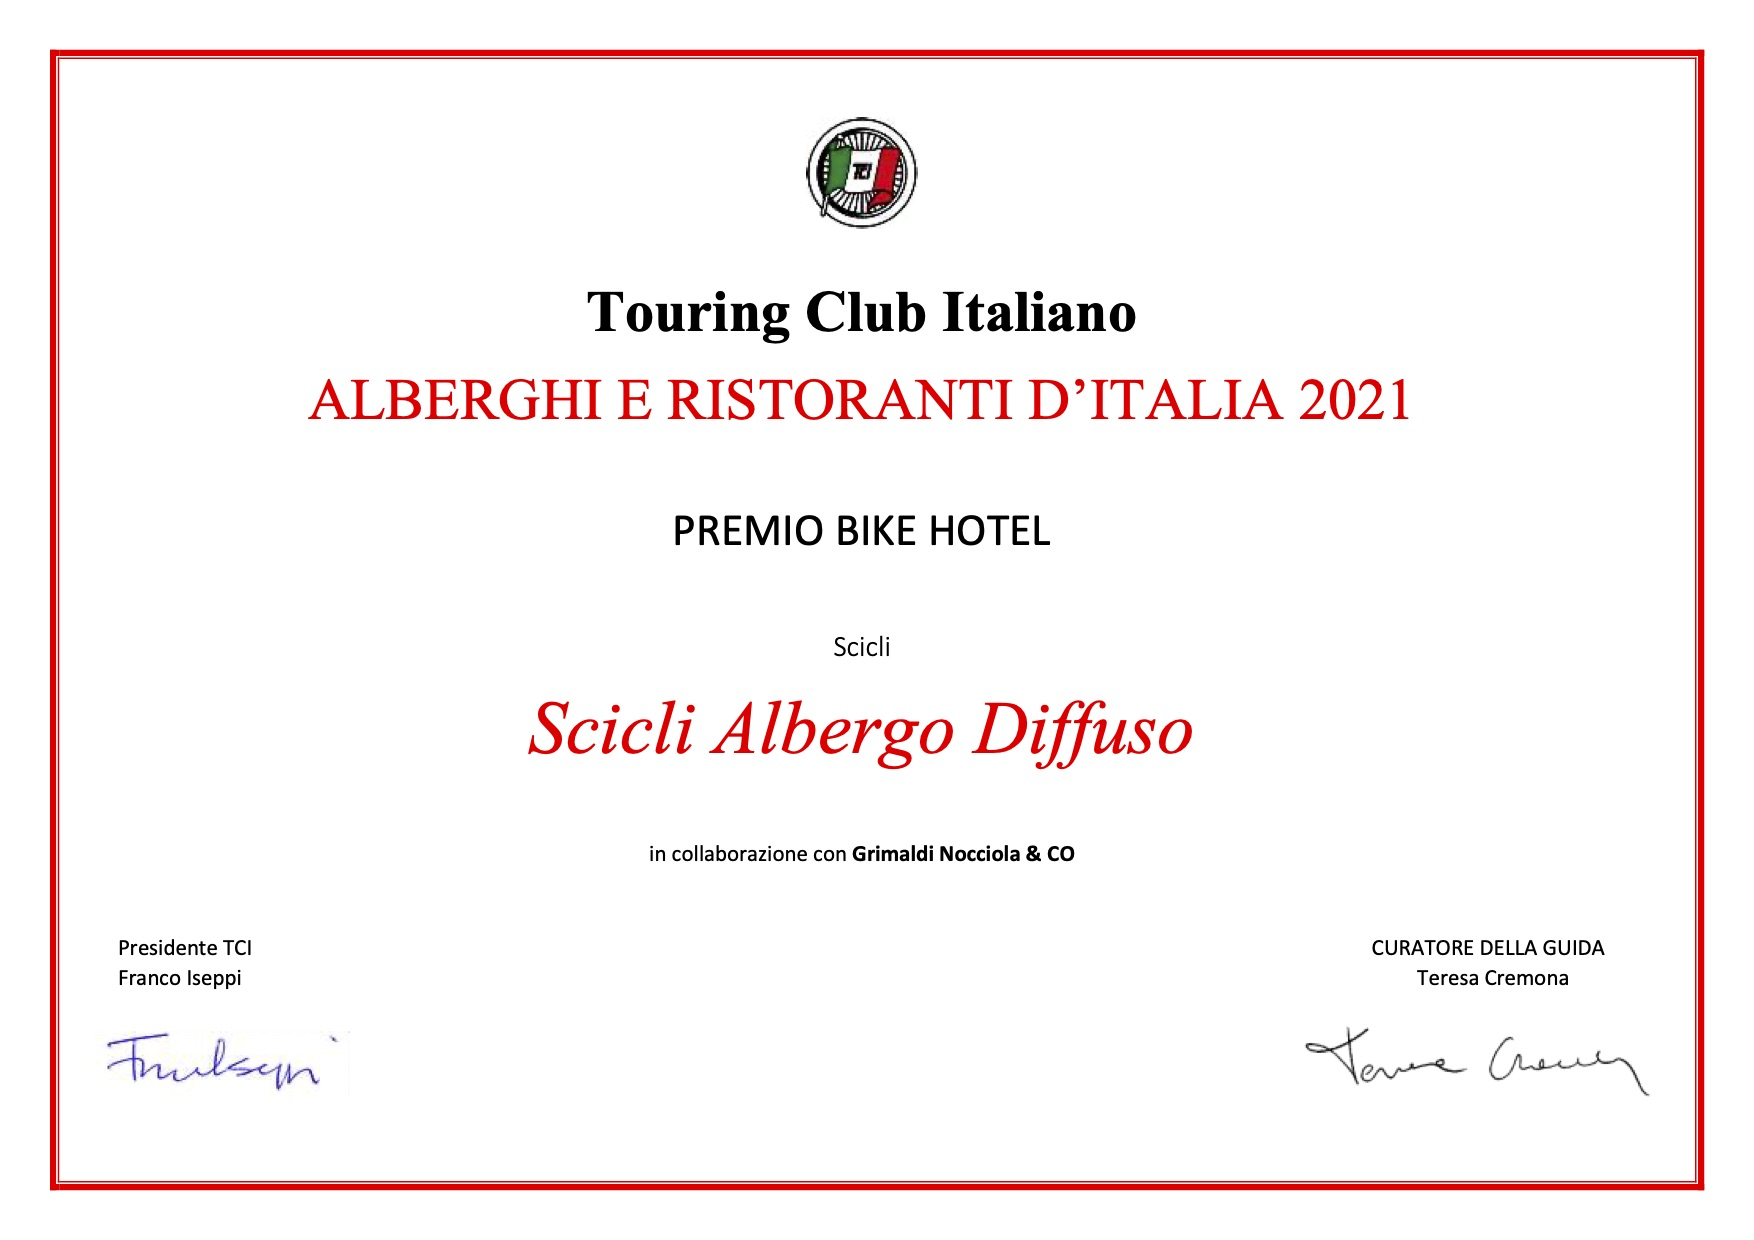 Attestato touring club italia miglior bike hotel 2021